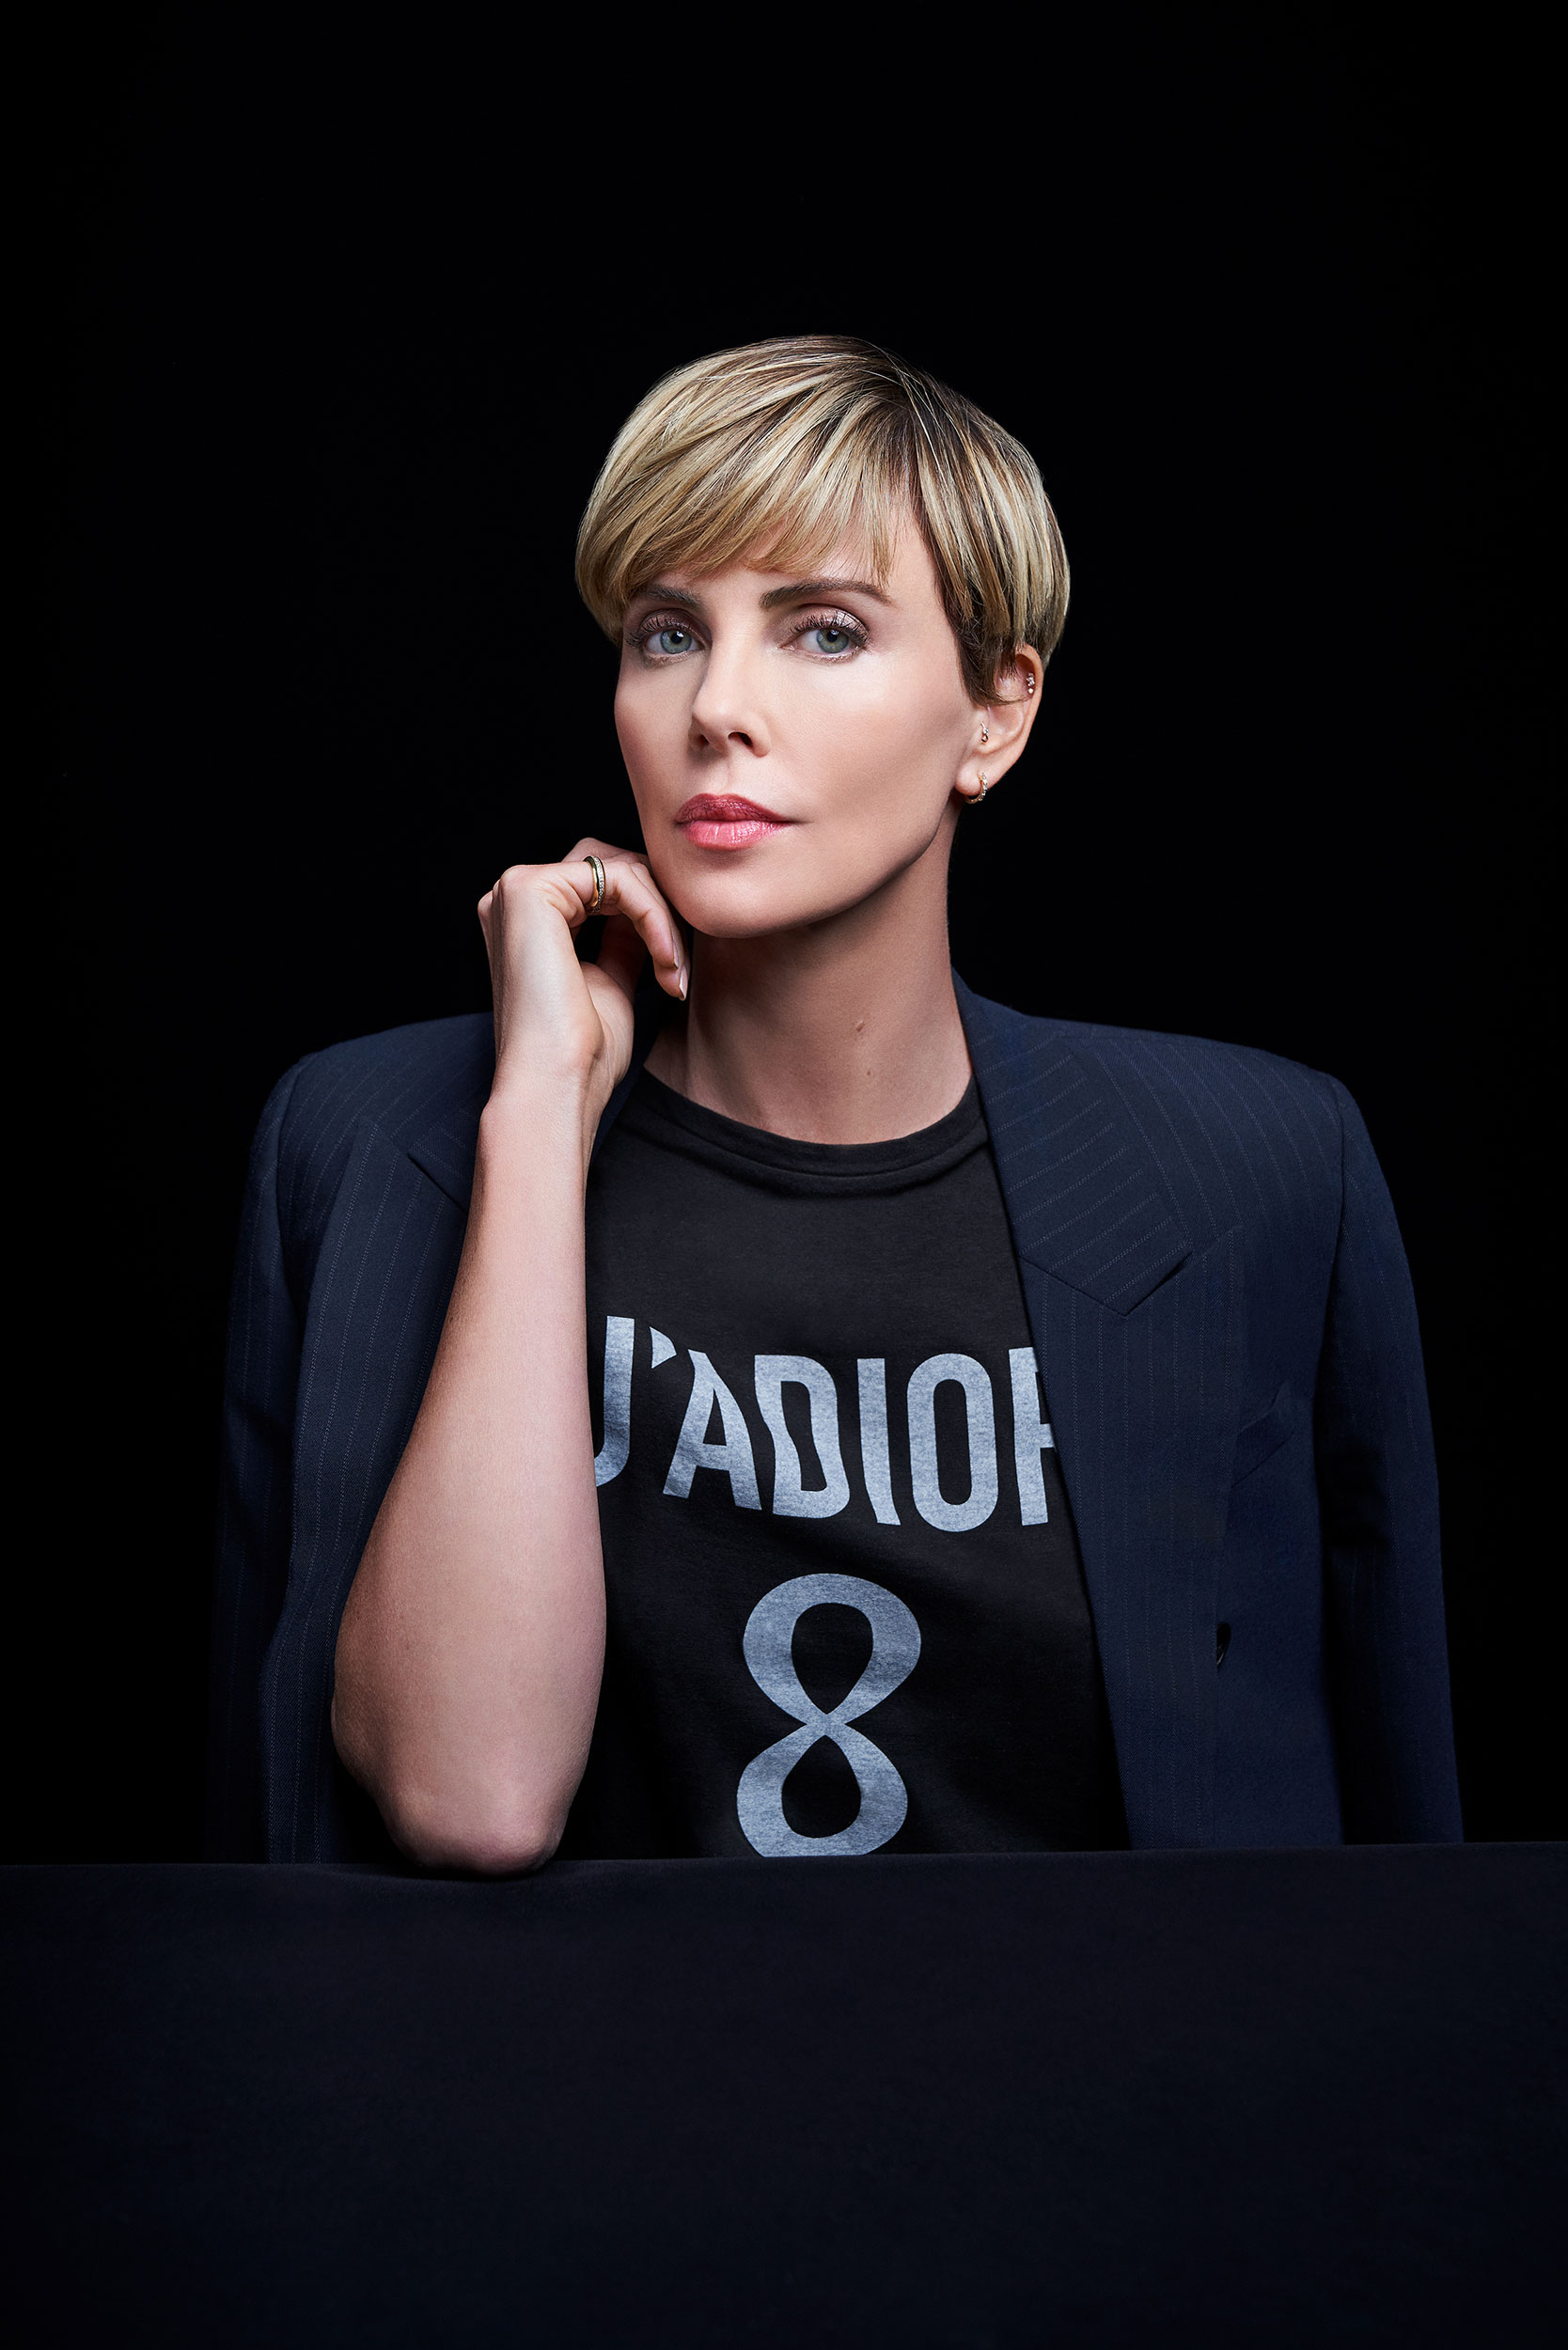 2019_09_24_Charlize_Theron_5275